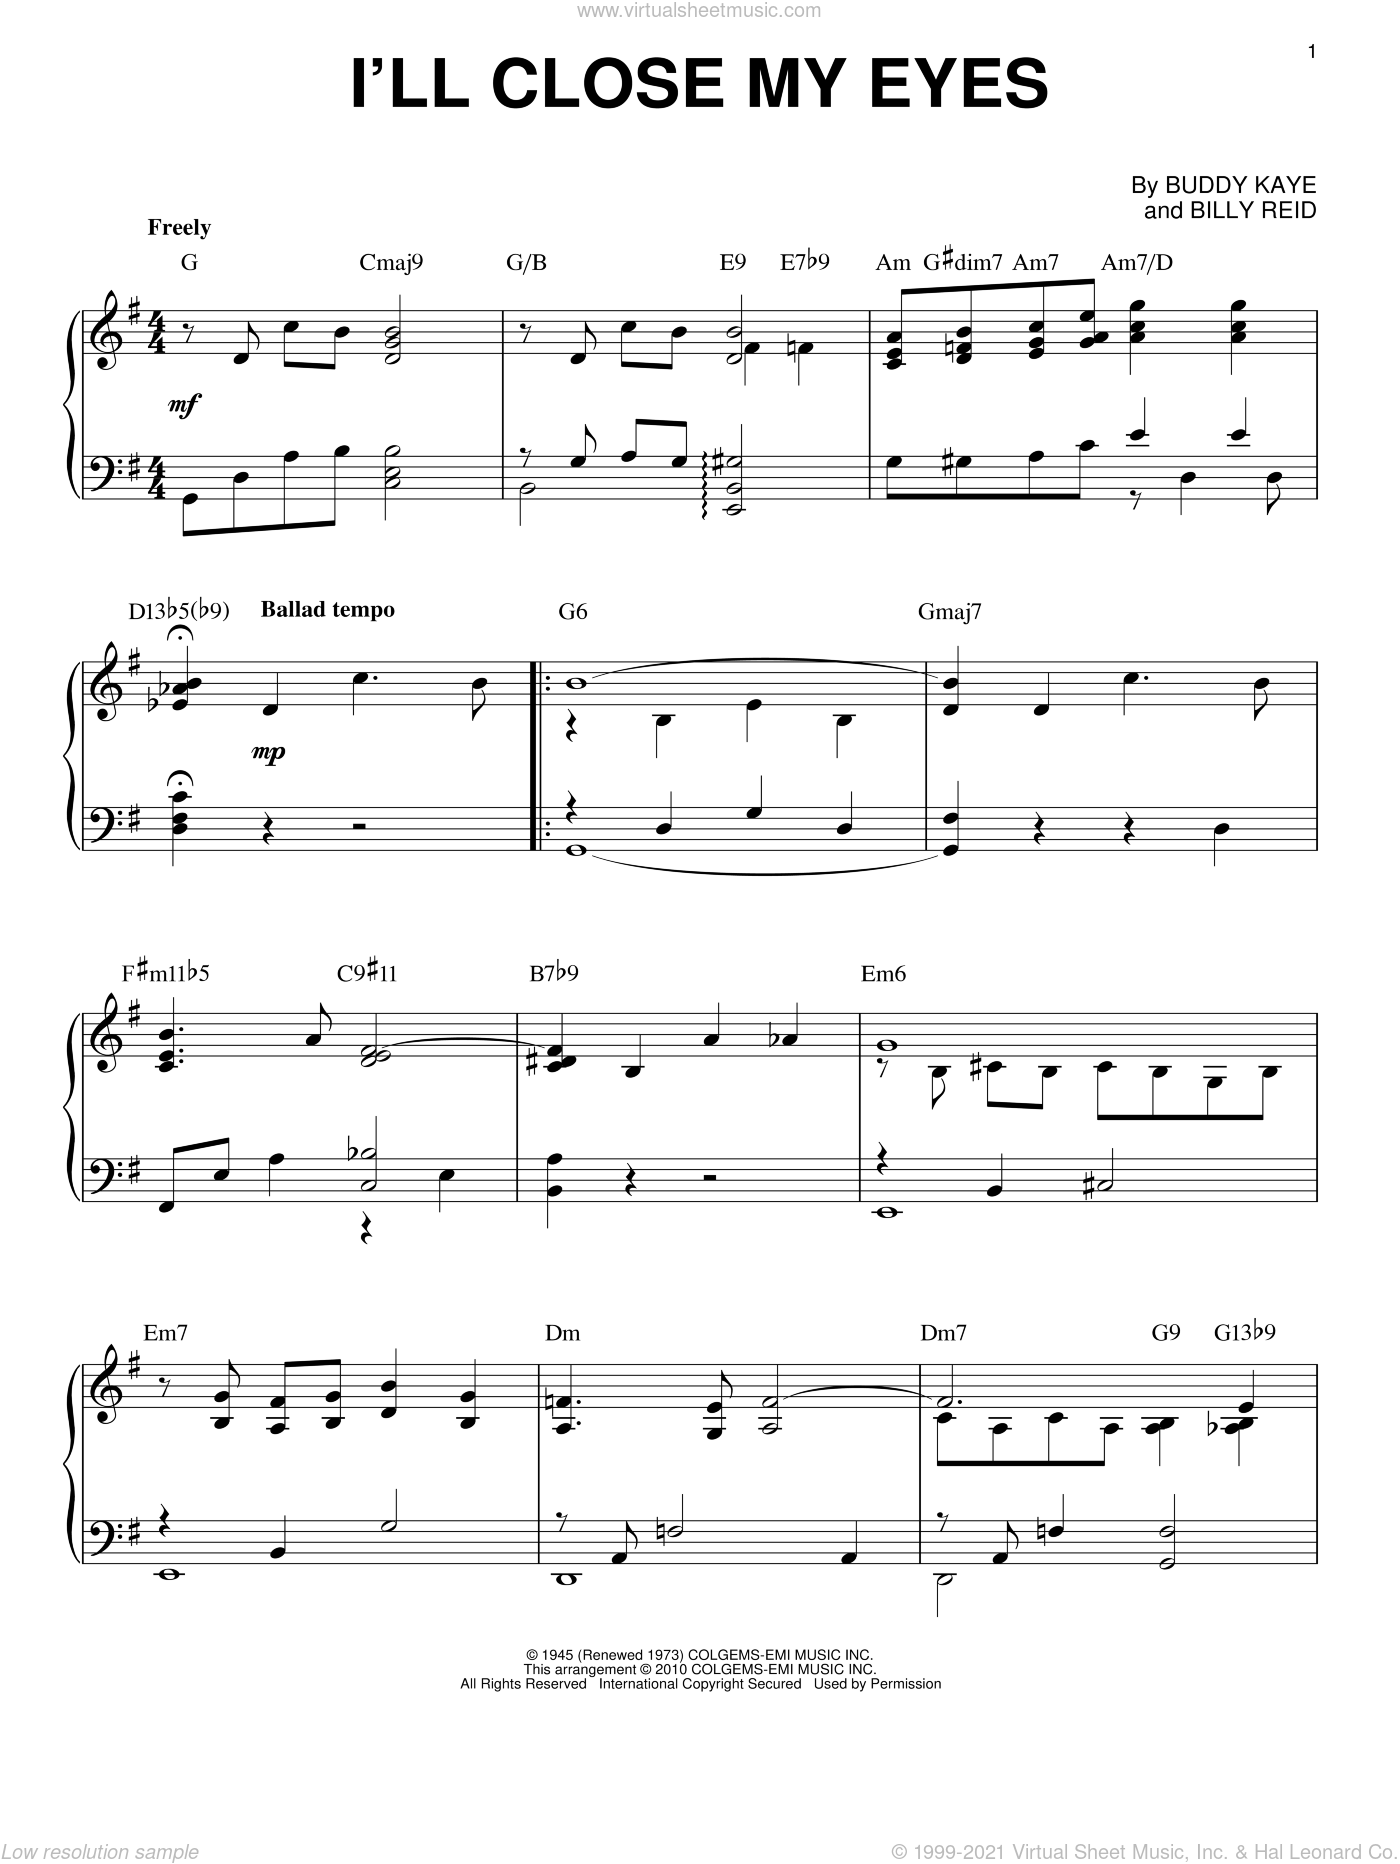 I'll Close My Eyes sheet music for piano solo by Kenny Burrell, Billy Reid and Buddy Kaye, intermediate skill level